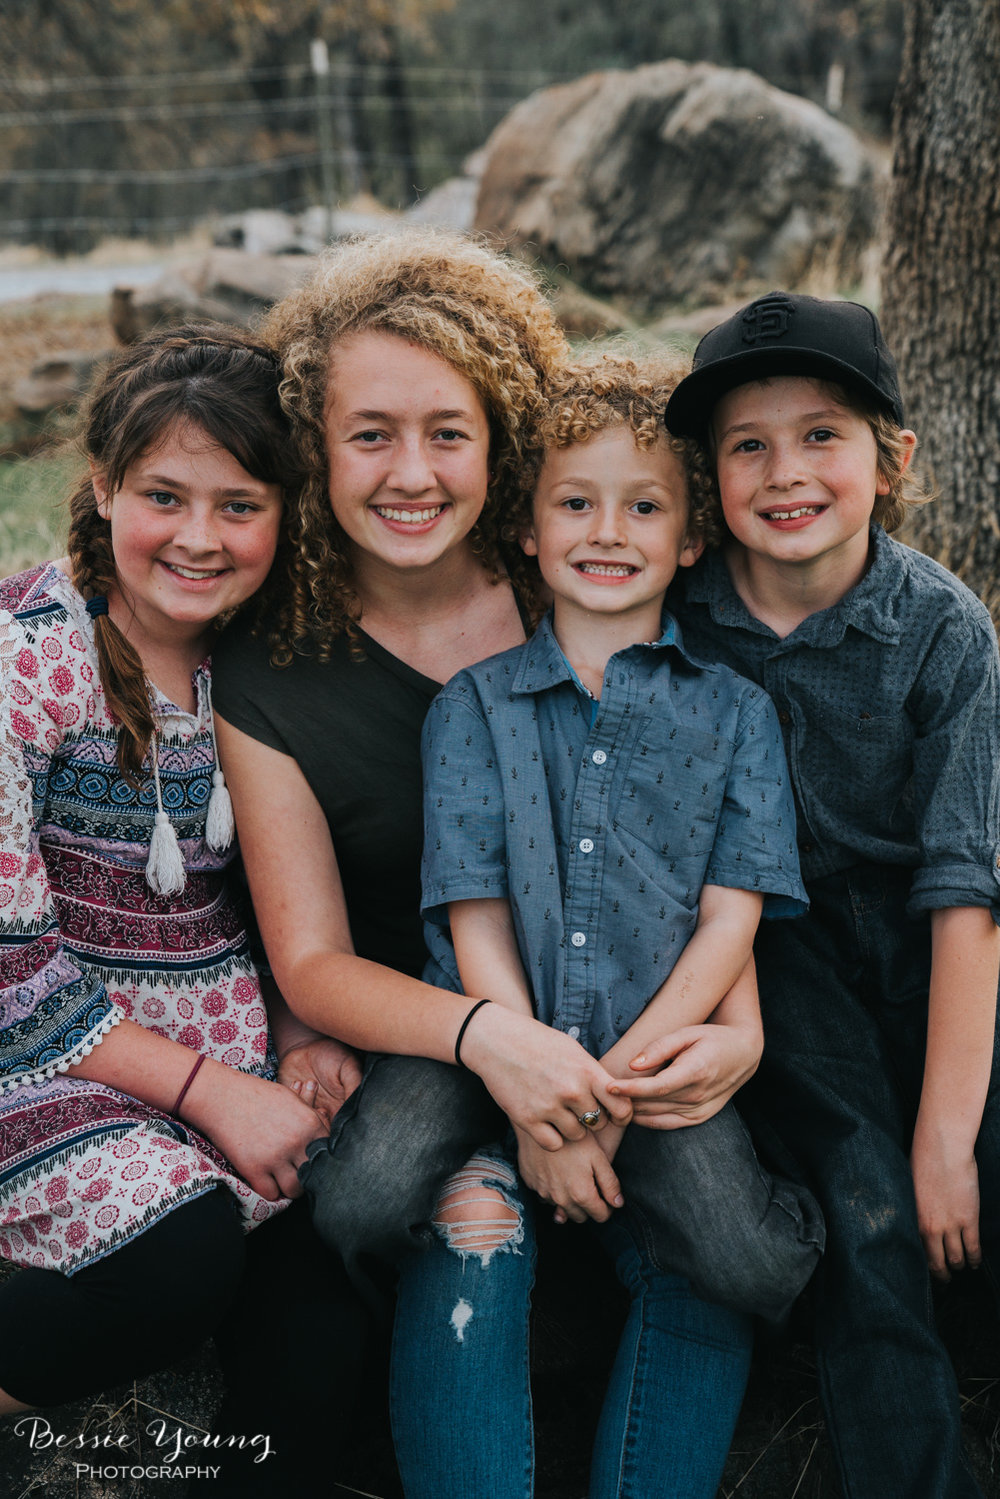 Sonora Family Portraits - Sonora Photographer Bessie Young - 4 sibling posing guide